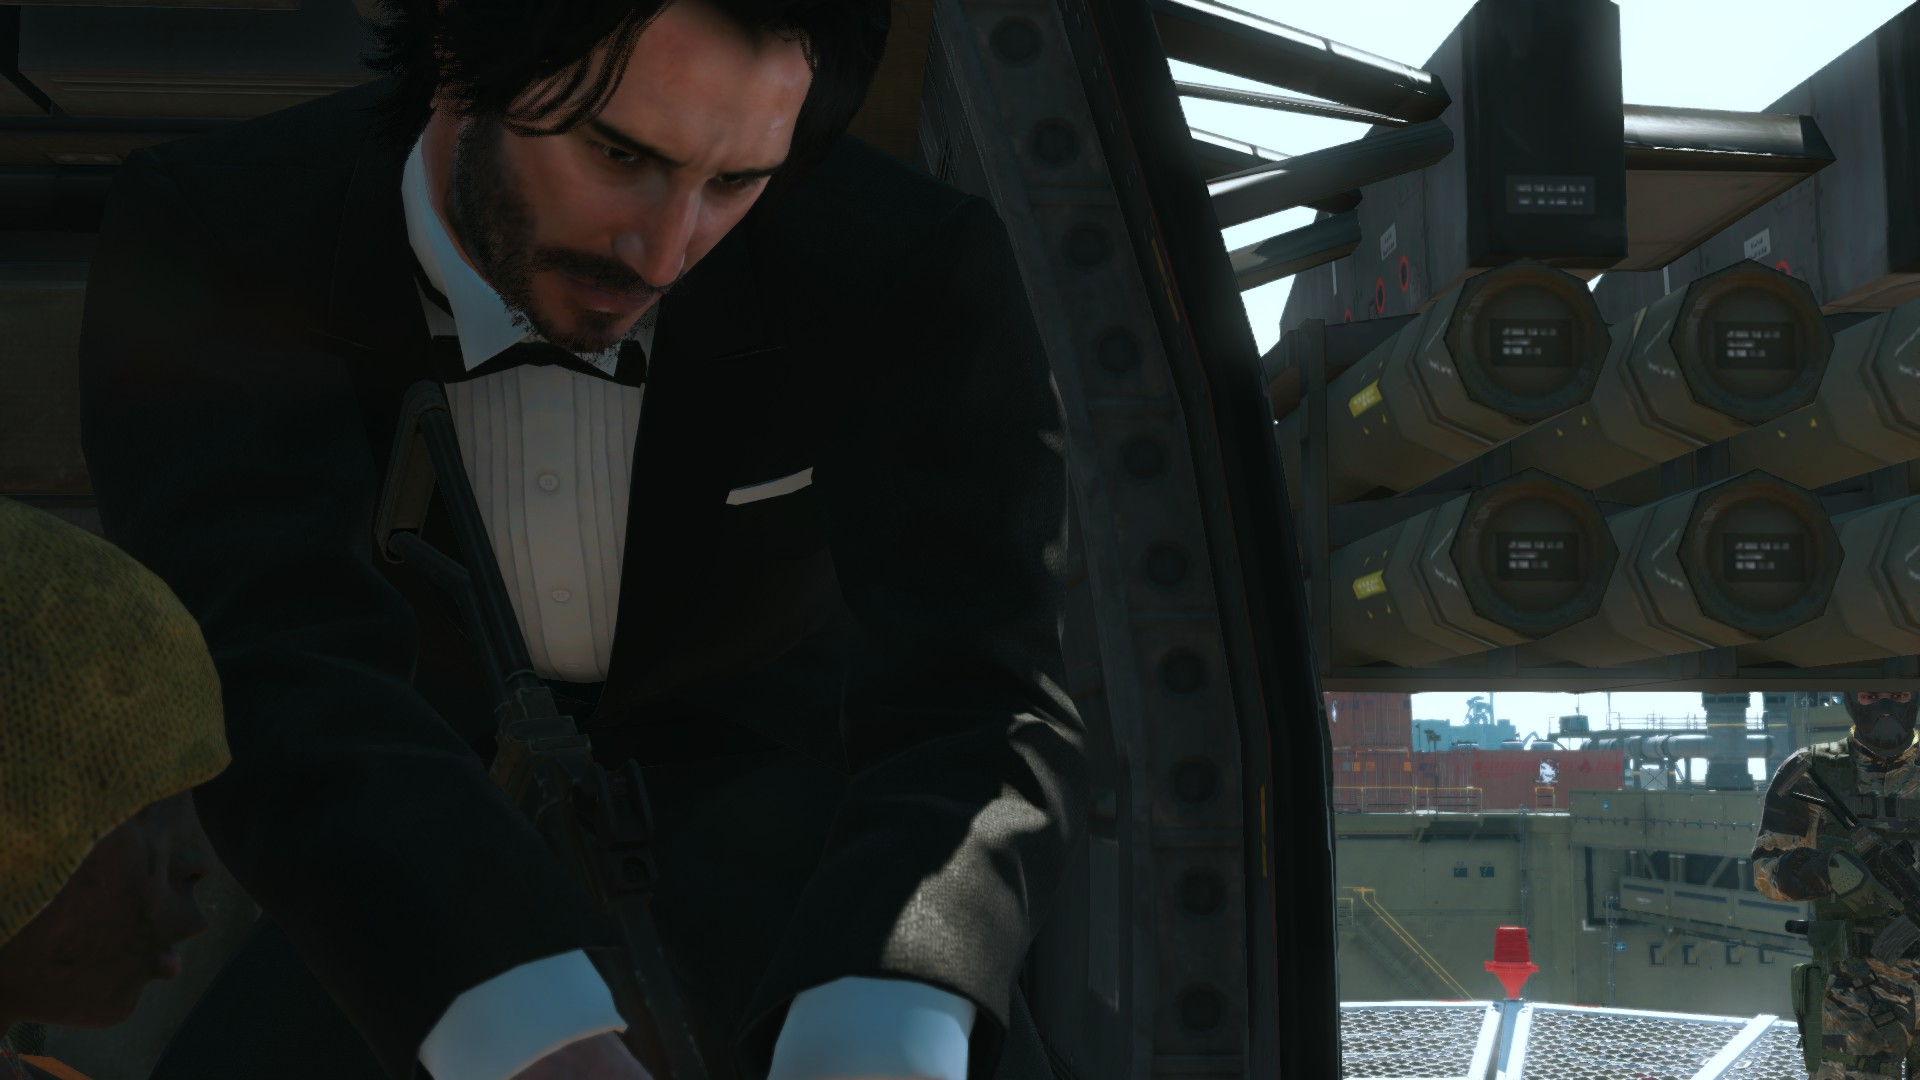 Keanu Reeves Was Modded In Metal Gear Solid V Alienware Arena